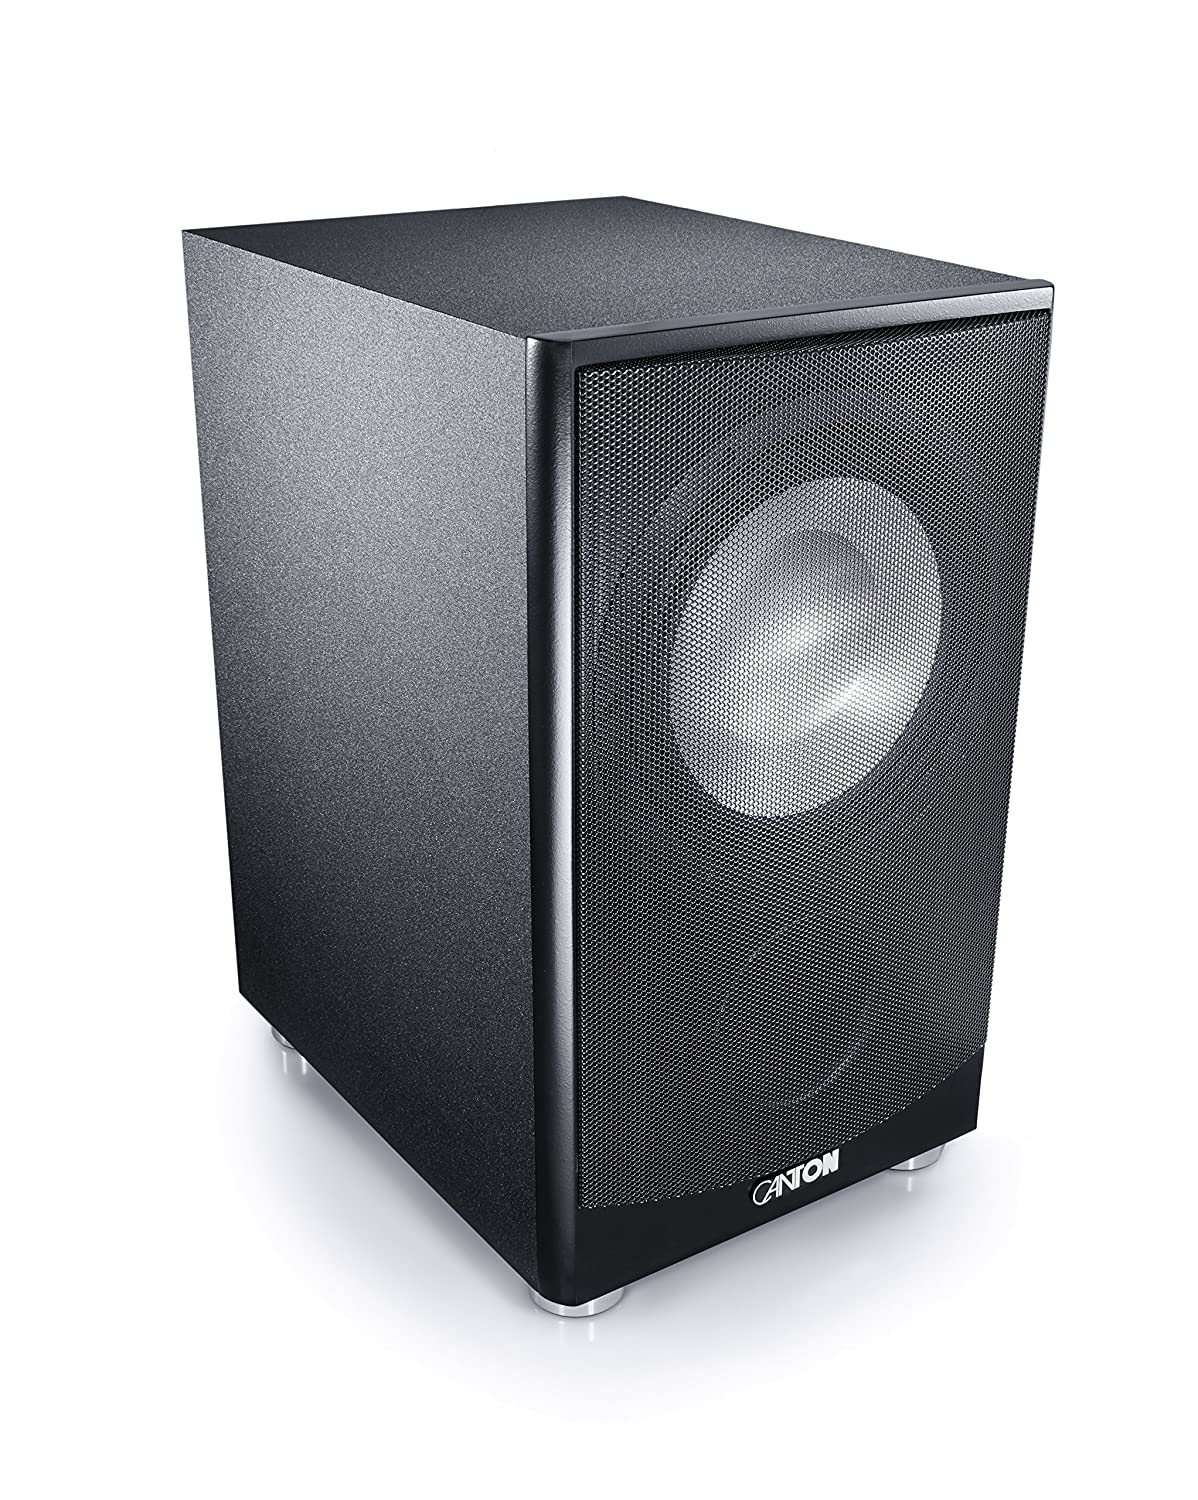 Canton AS 85.2 SC, Subwoofer Test